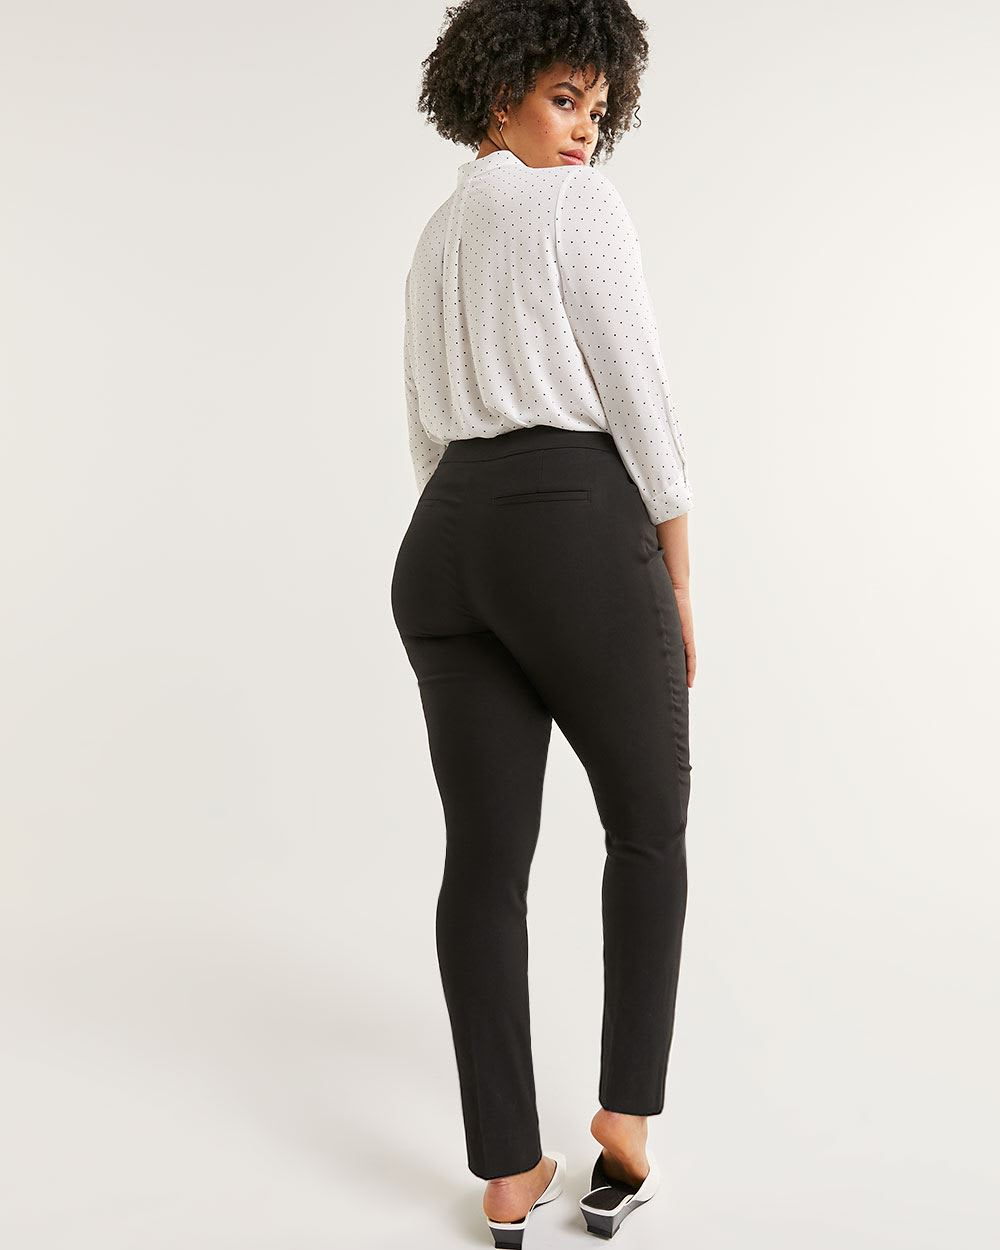 High Rise Slim Pull On Pants The Iconic